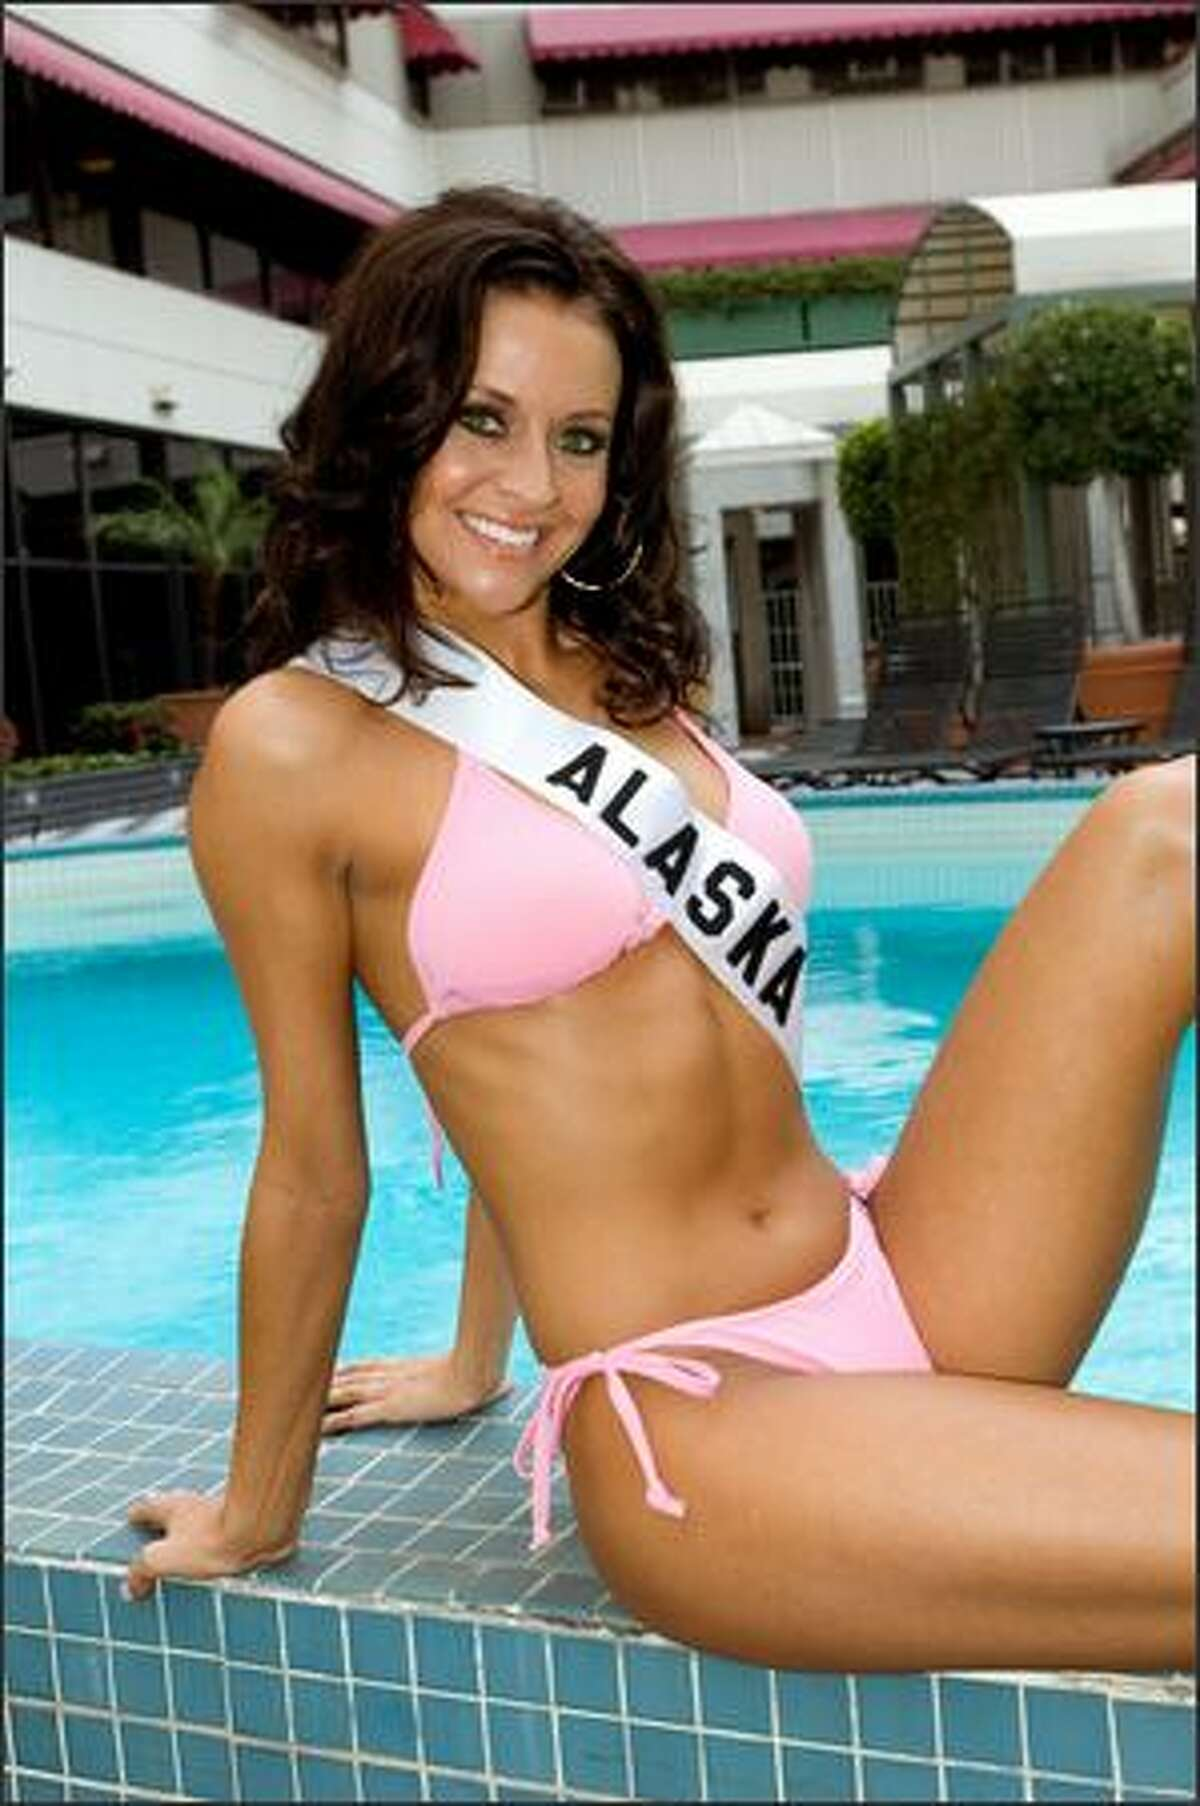 Blair Chenoweth, Miss Alaska USA 2007, poses in her swimwear by BSC Thailand at the pool at the Wilshire Grand Hotel in Los Angeles on March 8, 2007. She will compete for the title of Miss USA 2007 during the NBC telecast of the 56th annual Miss USA competition on March 23 at 9 p.m. (ET/delayed PT) from Los Angeles.